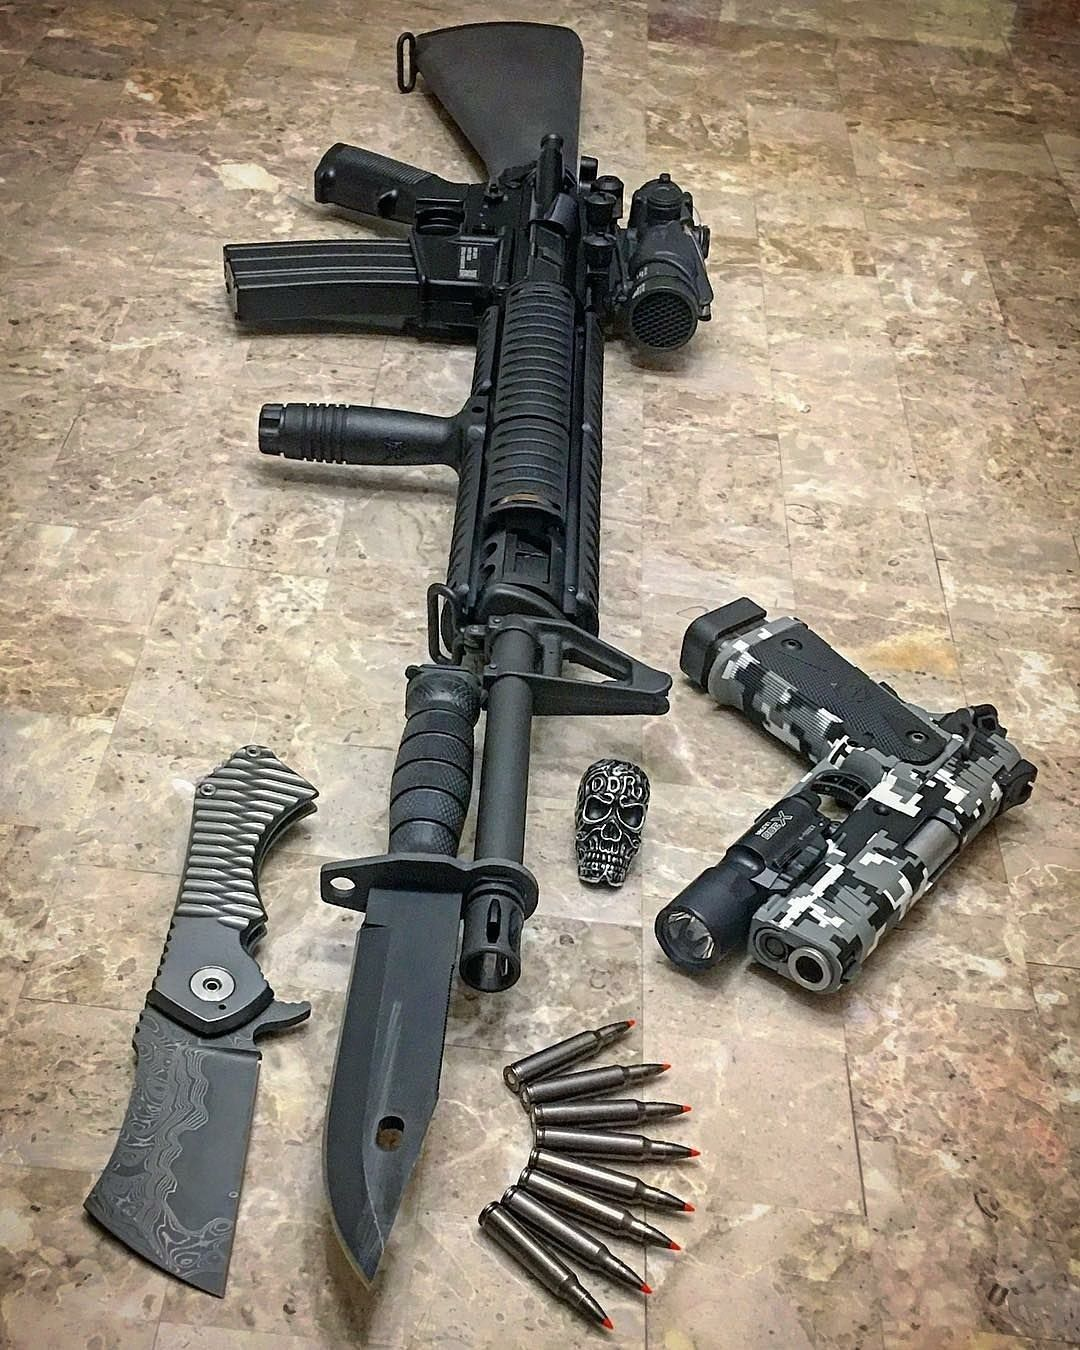 Military Guns For Sale >> Welcome To The Guns We Do Not Sell Firearms Zombies